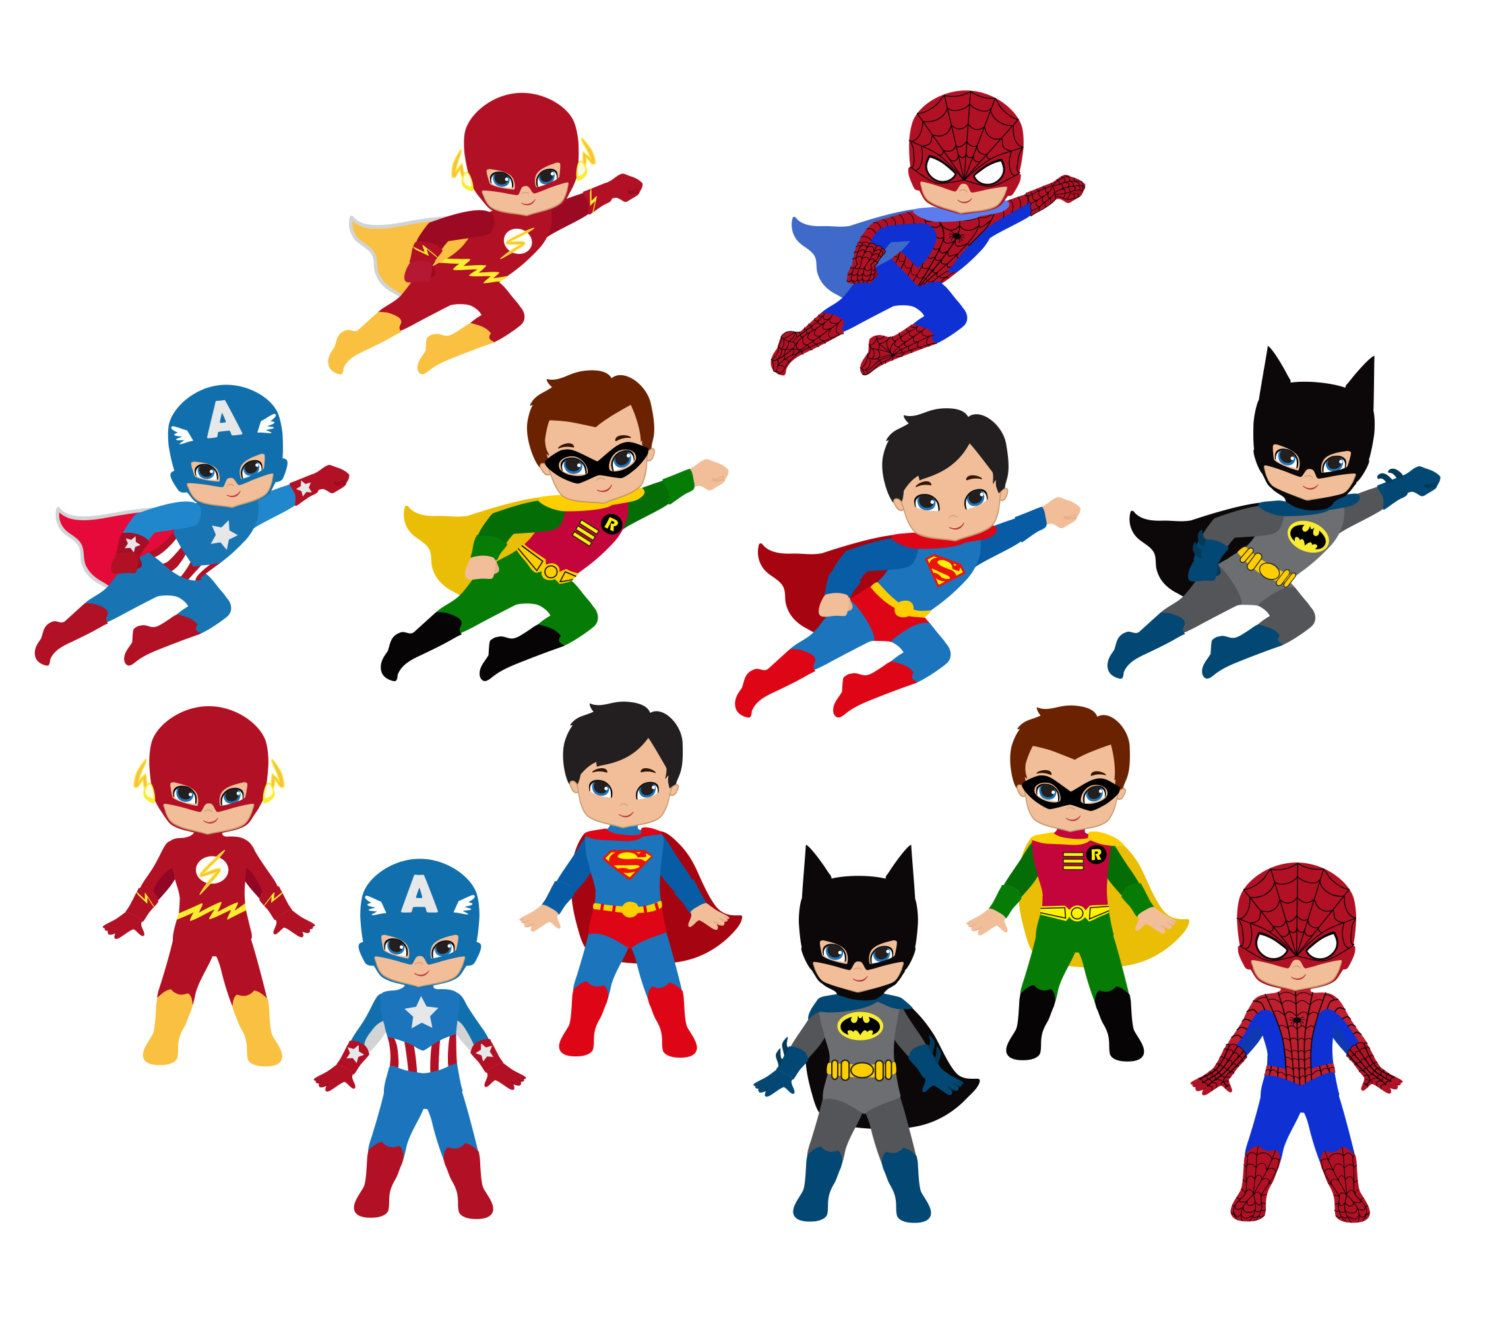 free superhero clipart fonts clipart freebies pinterest rh pinterest com superhero clipart alphabet superhero clipart free for kids